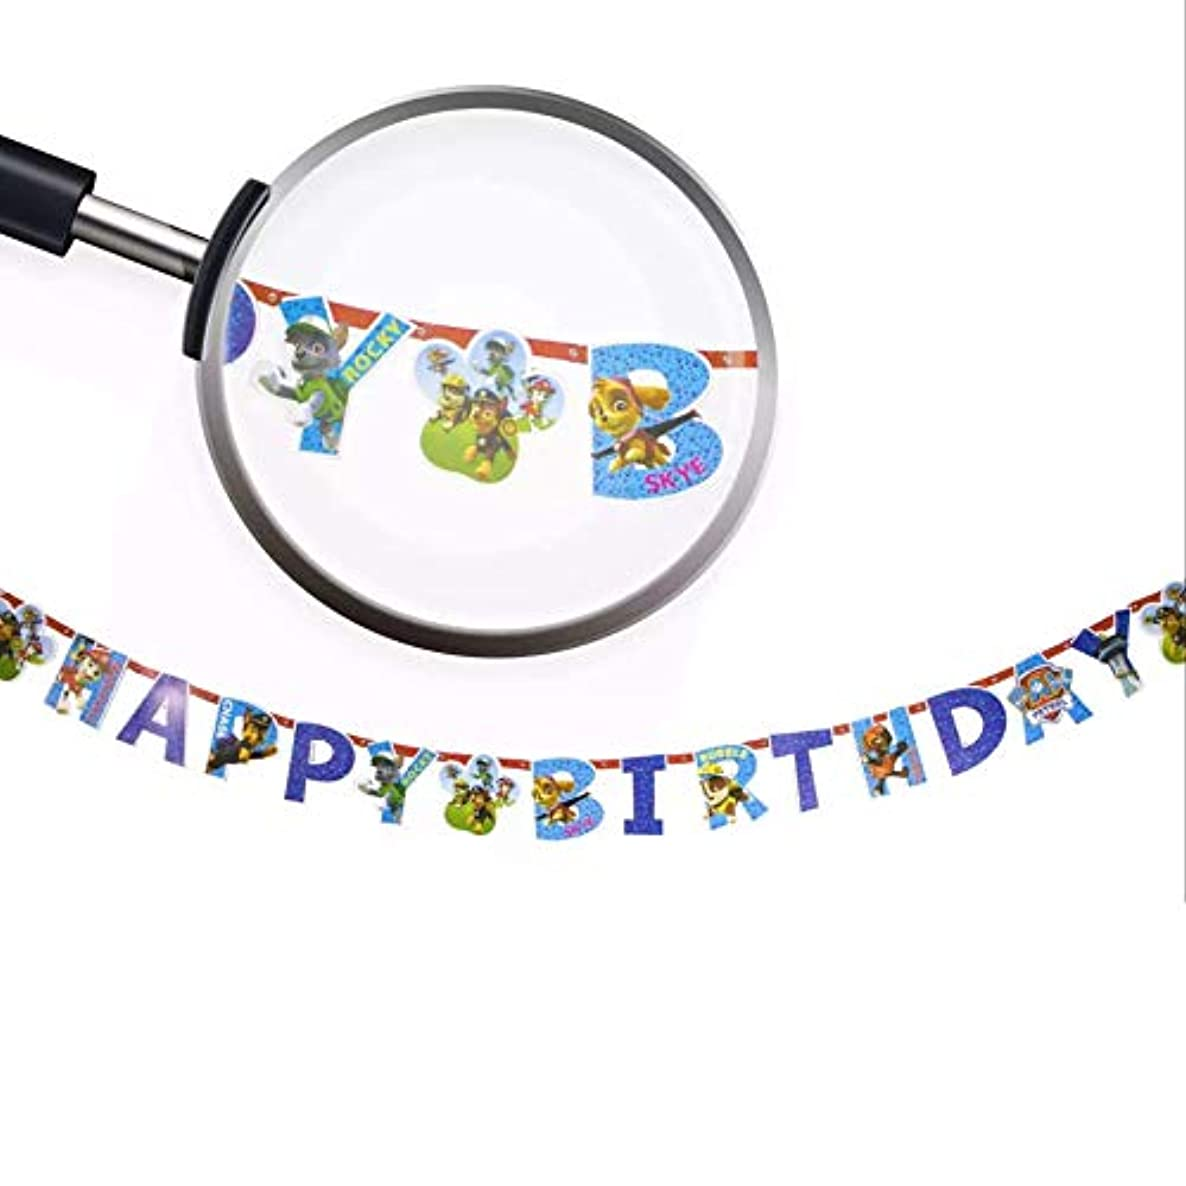 Astra Gourmet Dog Patrol Happy Birthday Party Banner Bunting Banner Party Supplies